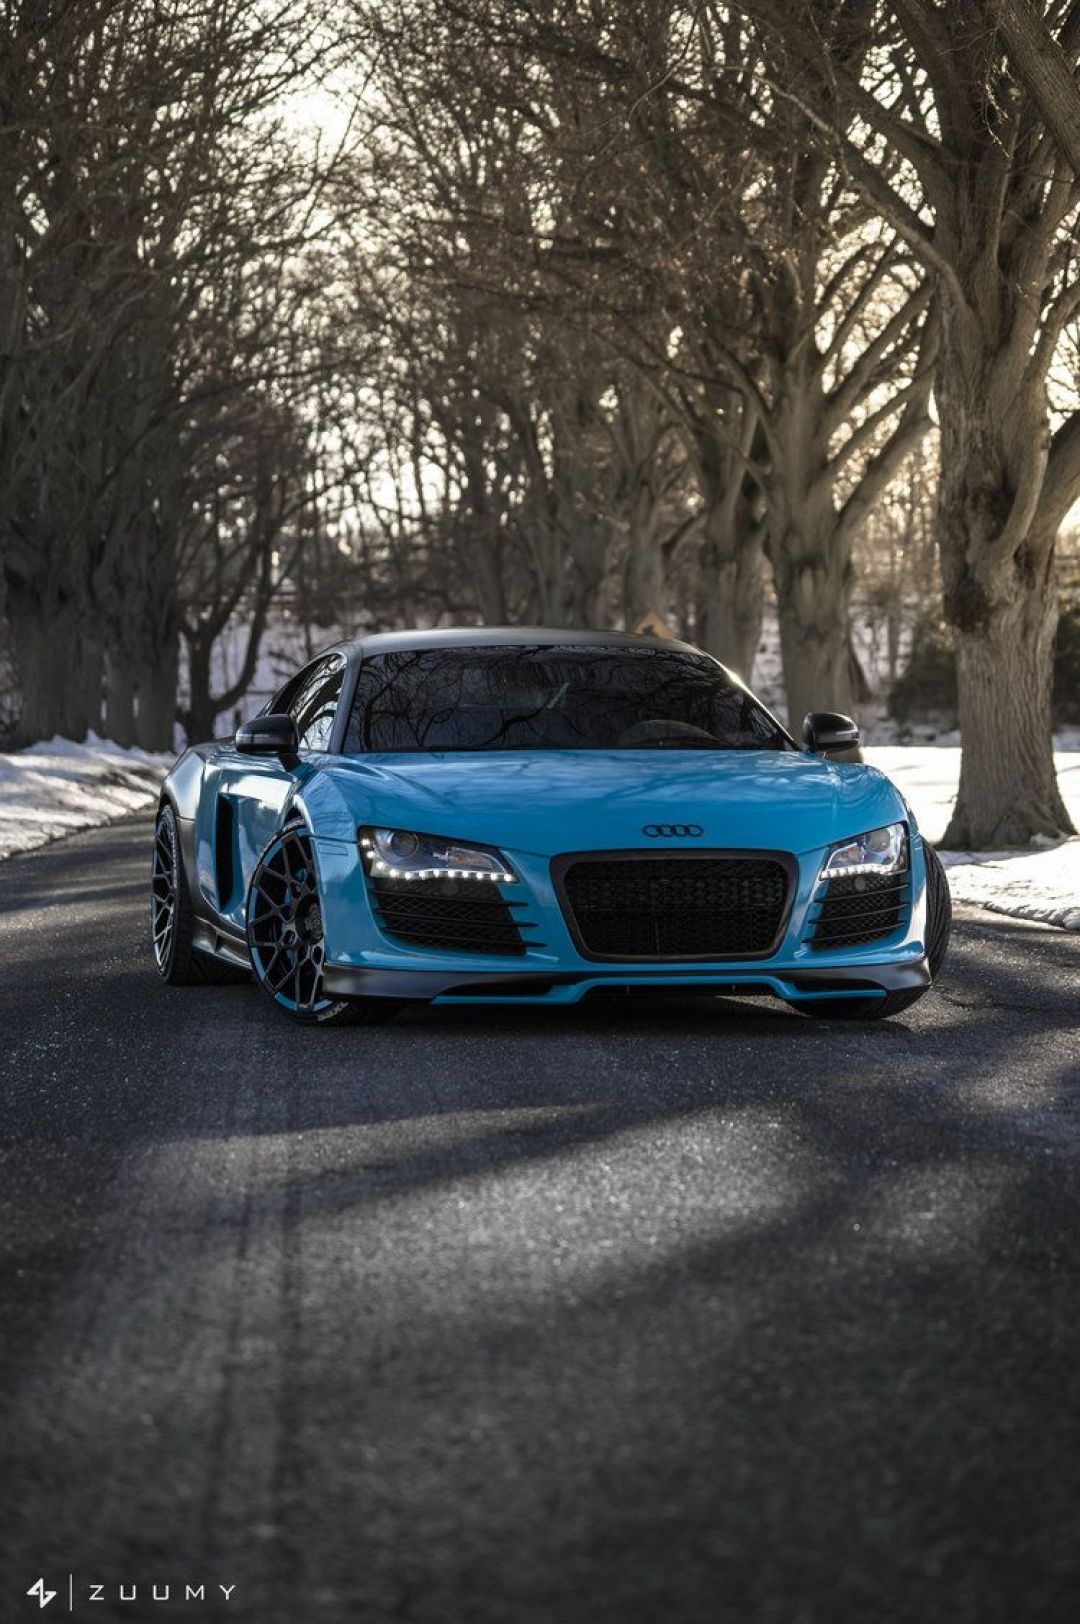 65 Audi R8 Hd Wallpapers Desktop Background Android Iphone 1080p 4k 1080x1624 2020